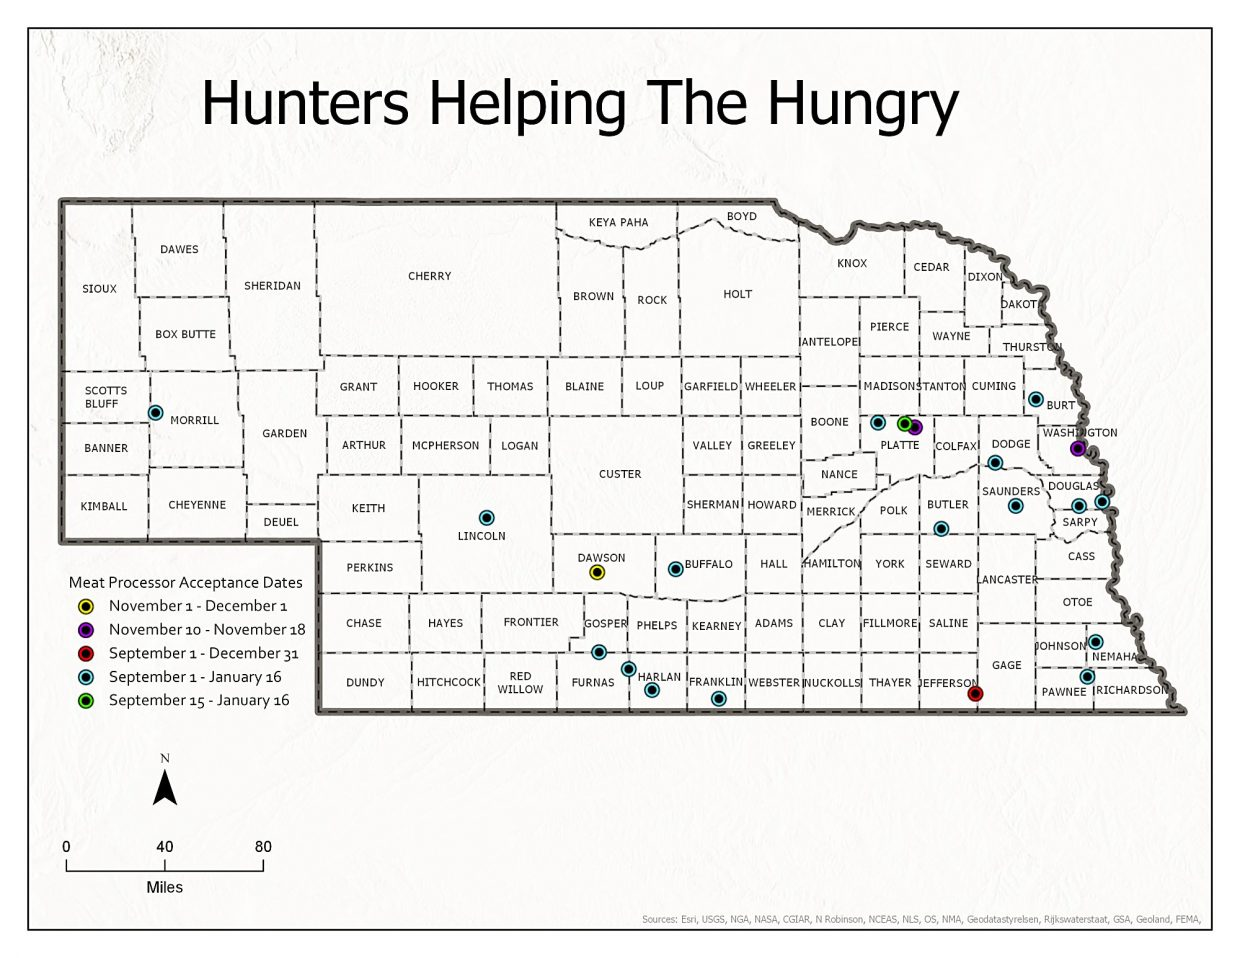 Hunters Helping the Hungry program targets venison to needy families